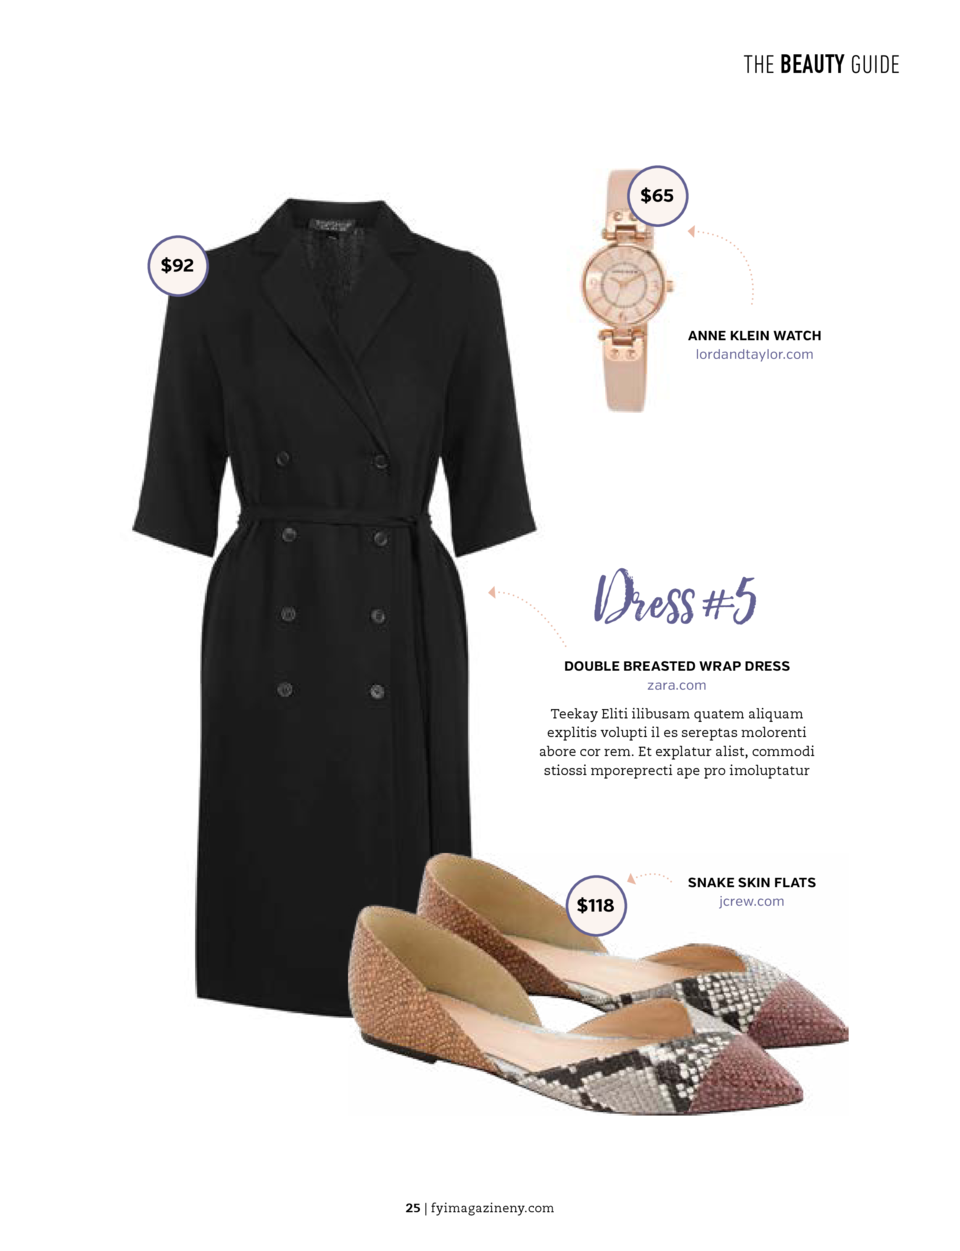 THE BEAUTY GUIDE  THE BEAUTY GUIDE  Dress  4   45   65  MEGAN DRESS chichilondon.com   100  GOLD CUFF stevemadden.com  Don...